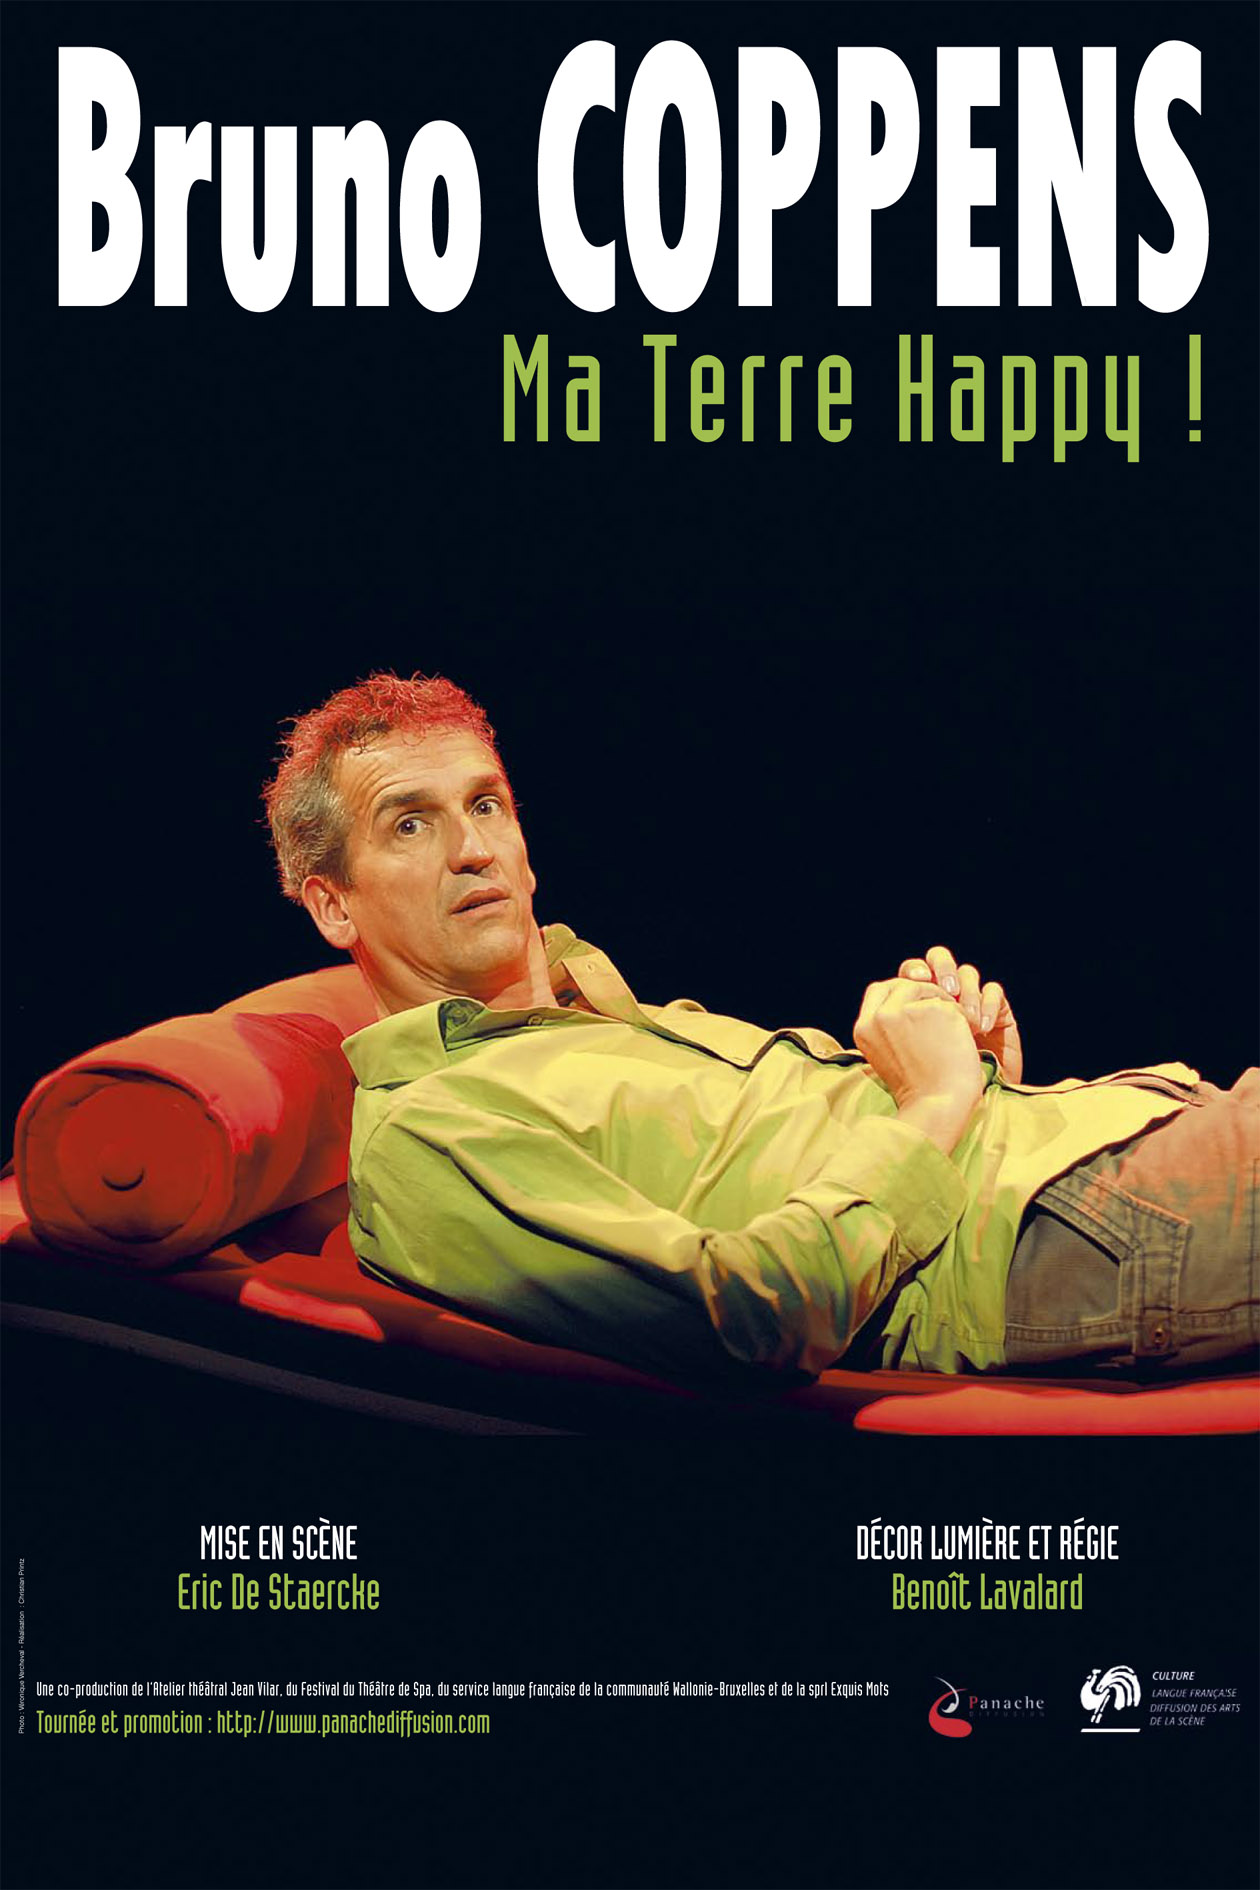 Bruno Coppens - Ma terre happy